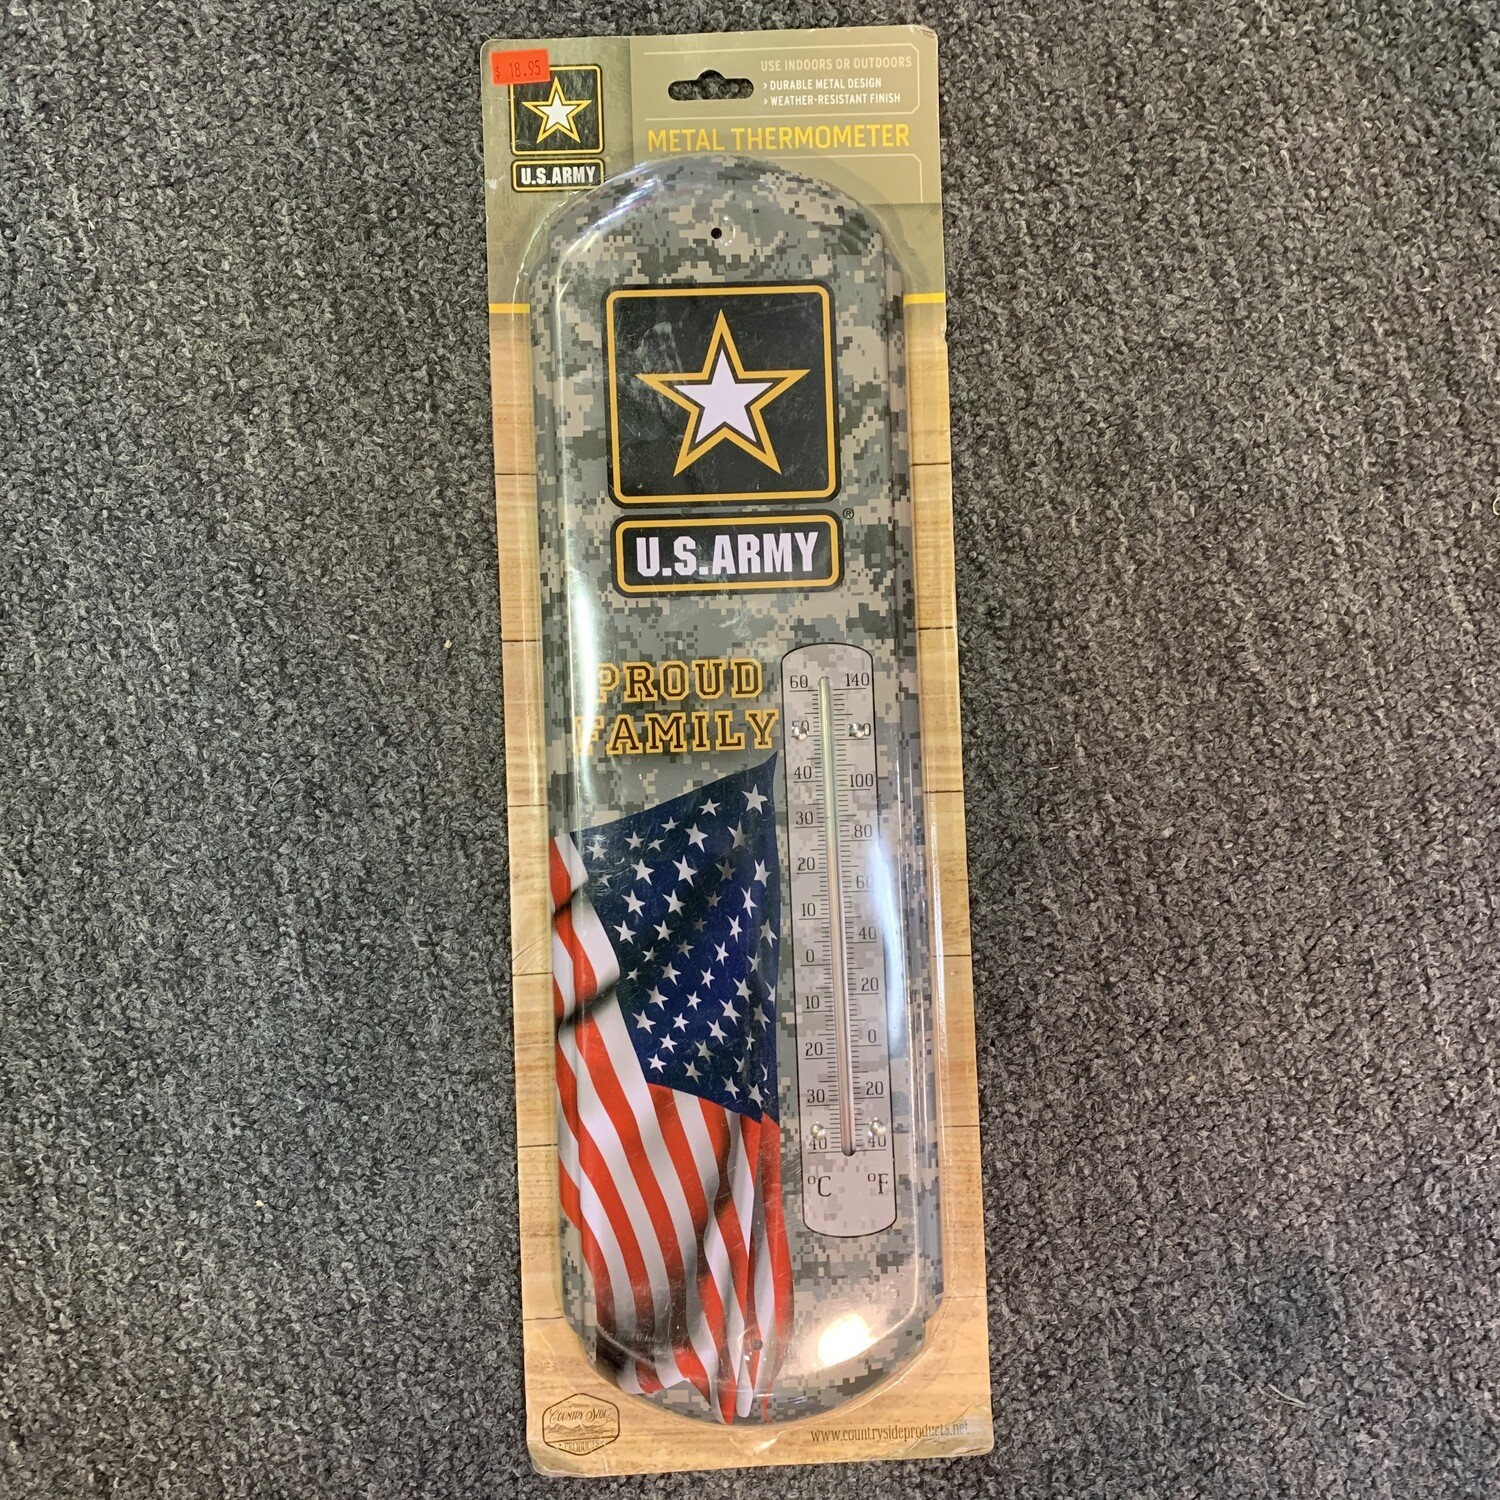 U.S ARMY METAL OUTDOOR THERMOMETER